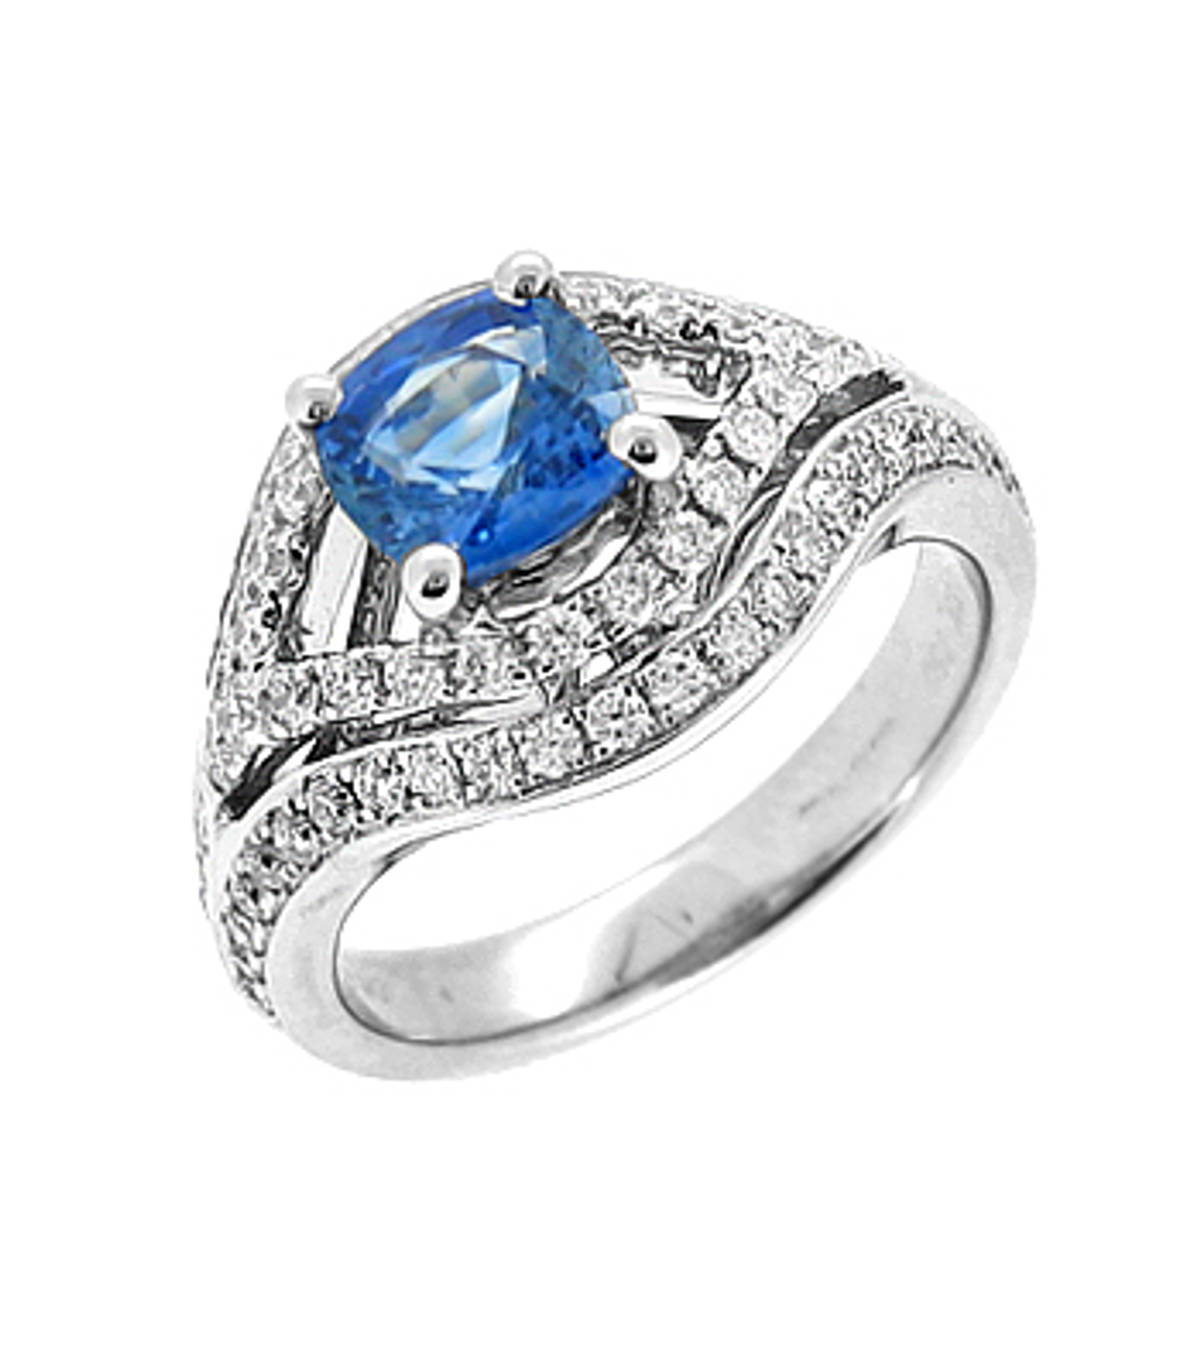 Sapphire and diamond cluster ringPictured item: sapphire: total 1.05ct/diamonds: total 0.61ct set in 18k white gold